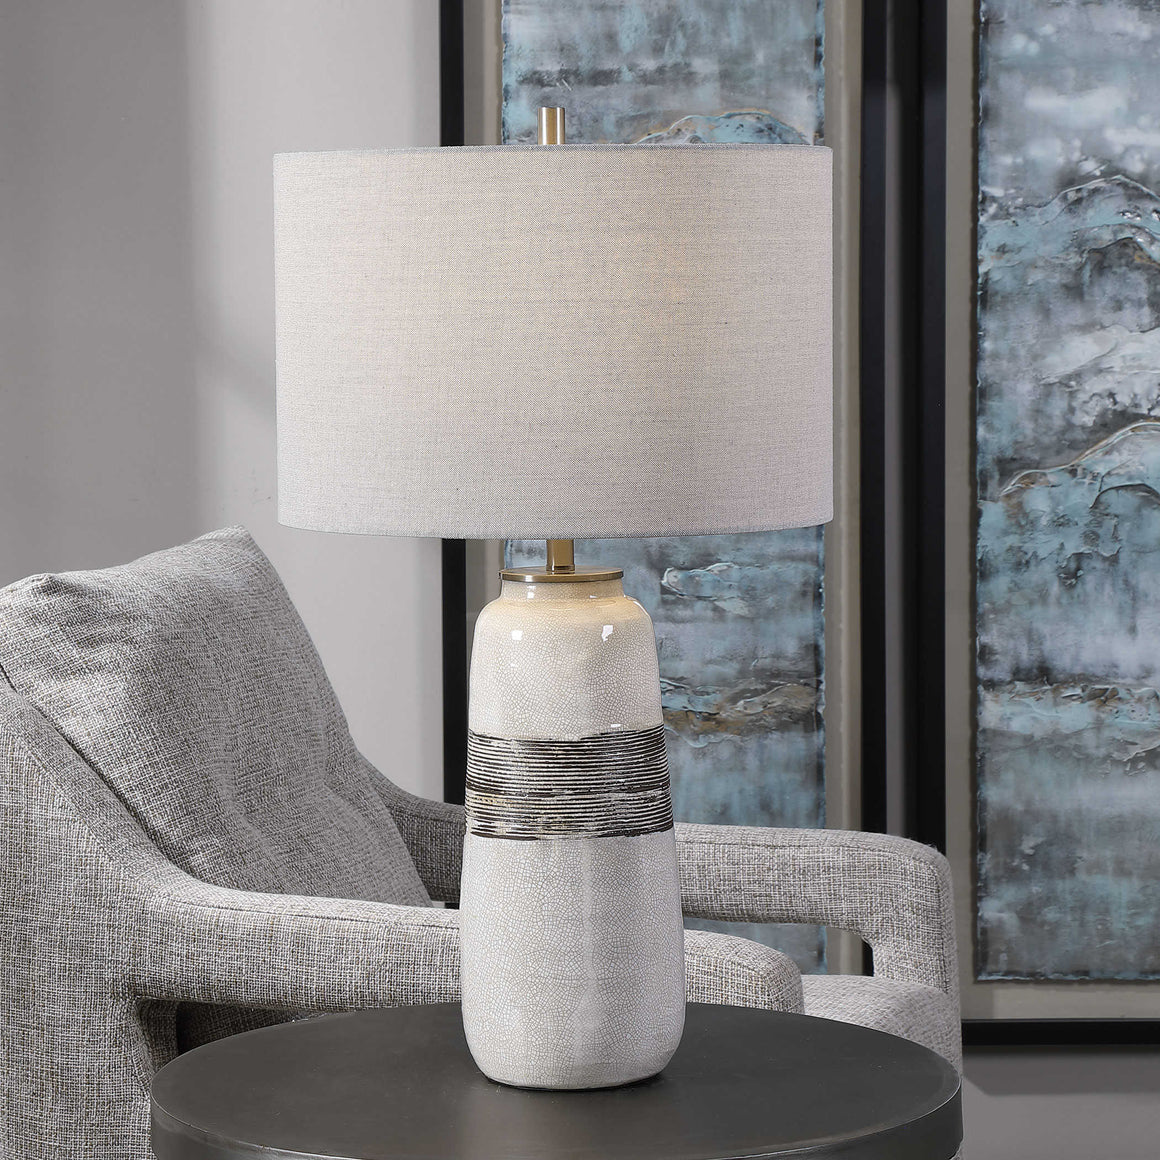 Comanche Table Lamp - taylor ray decor